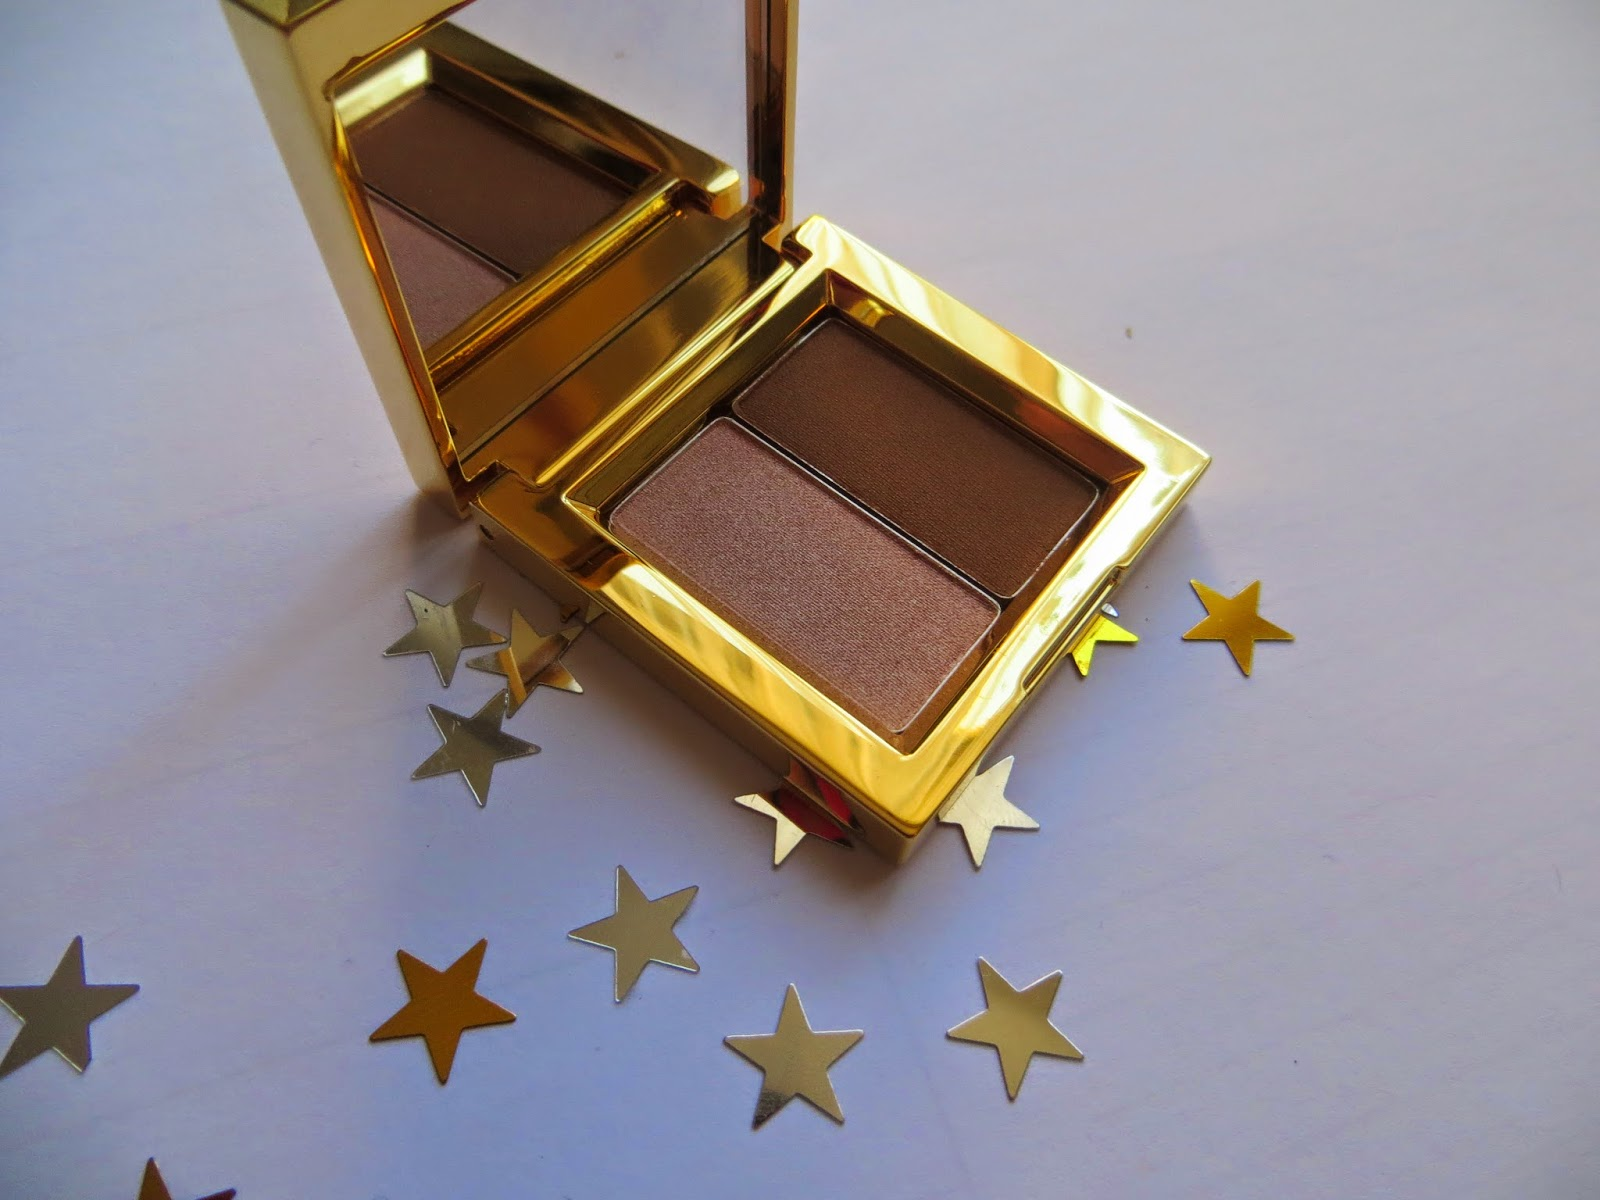 MAC, MAC makeup, MAC eyeshadow, MAC latest collection, MAC review, Mac cosmetics, Mac makeup, Natural makeup, Prabal Gurung makeup review, Prabal Gurung fashion